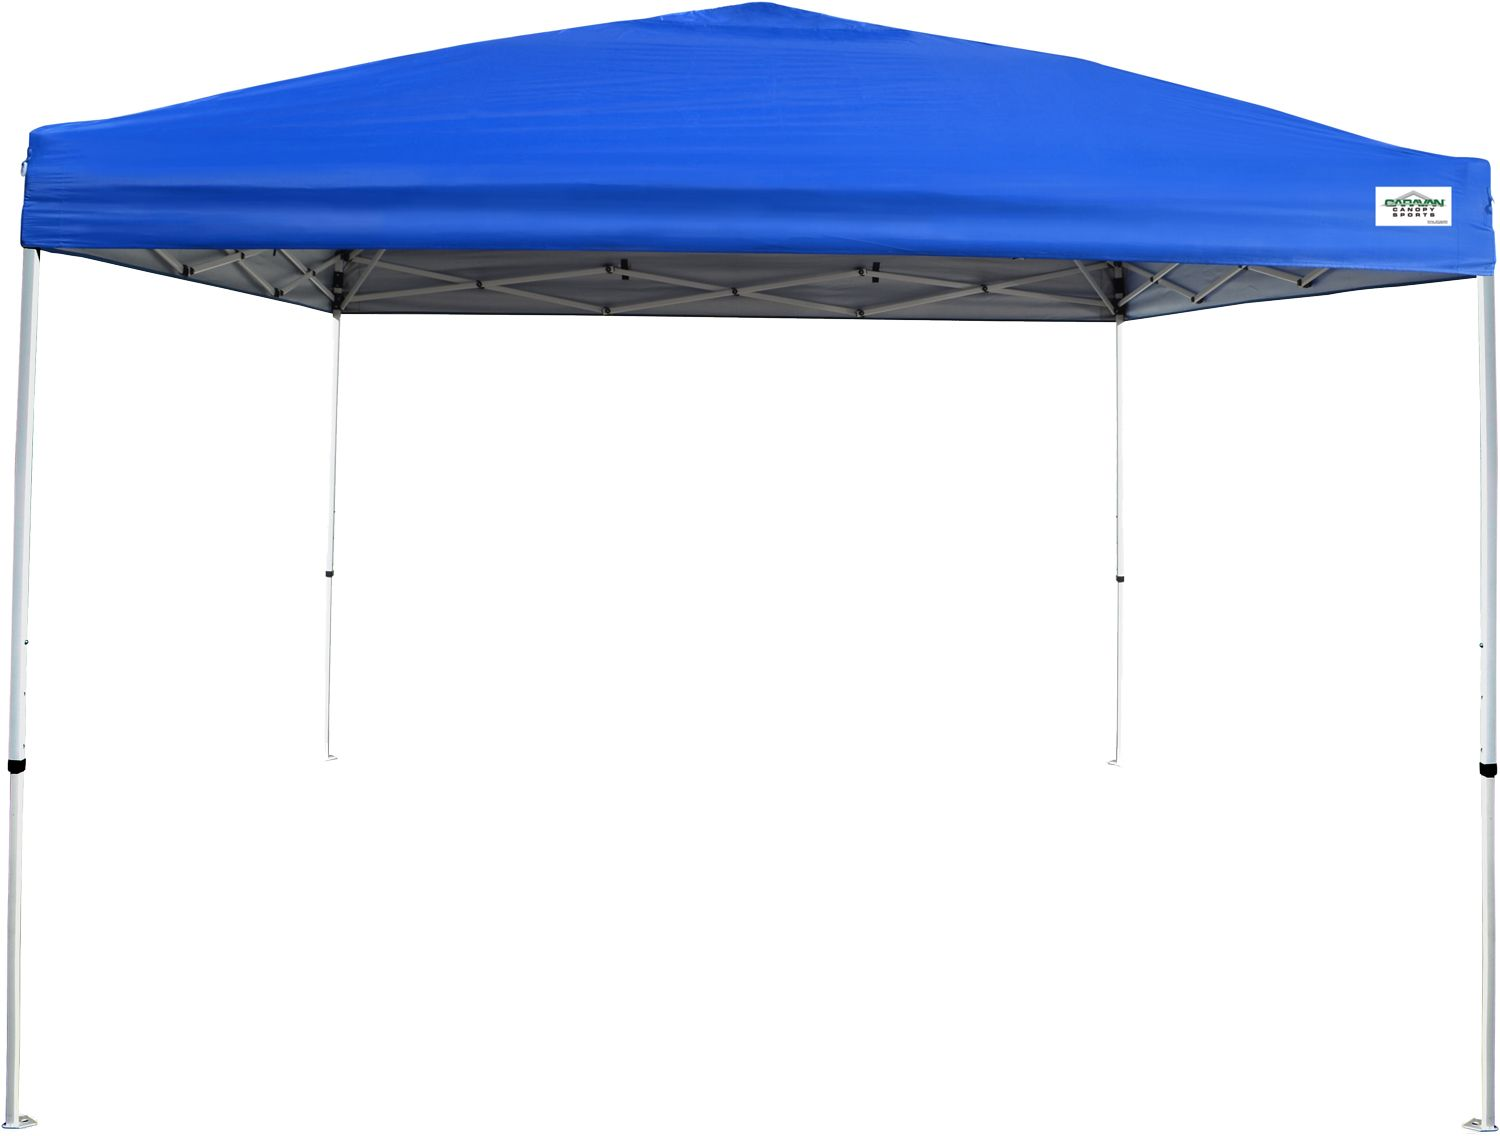 Product Image · Caravan Canopy V-Series 2 Pro 10u0027 x 10u0027 Straight Leg Canopy  sc 1 st  DICKu0027S Sporting Goods & Canopy Tents Pop Up Tents u0026 More | DICKu0027S Sporting Goods